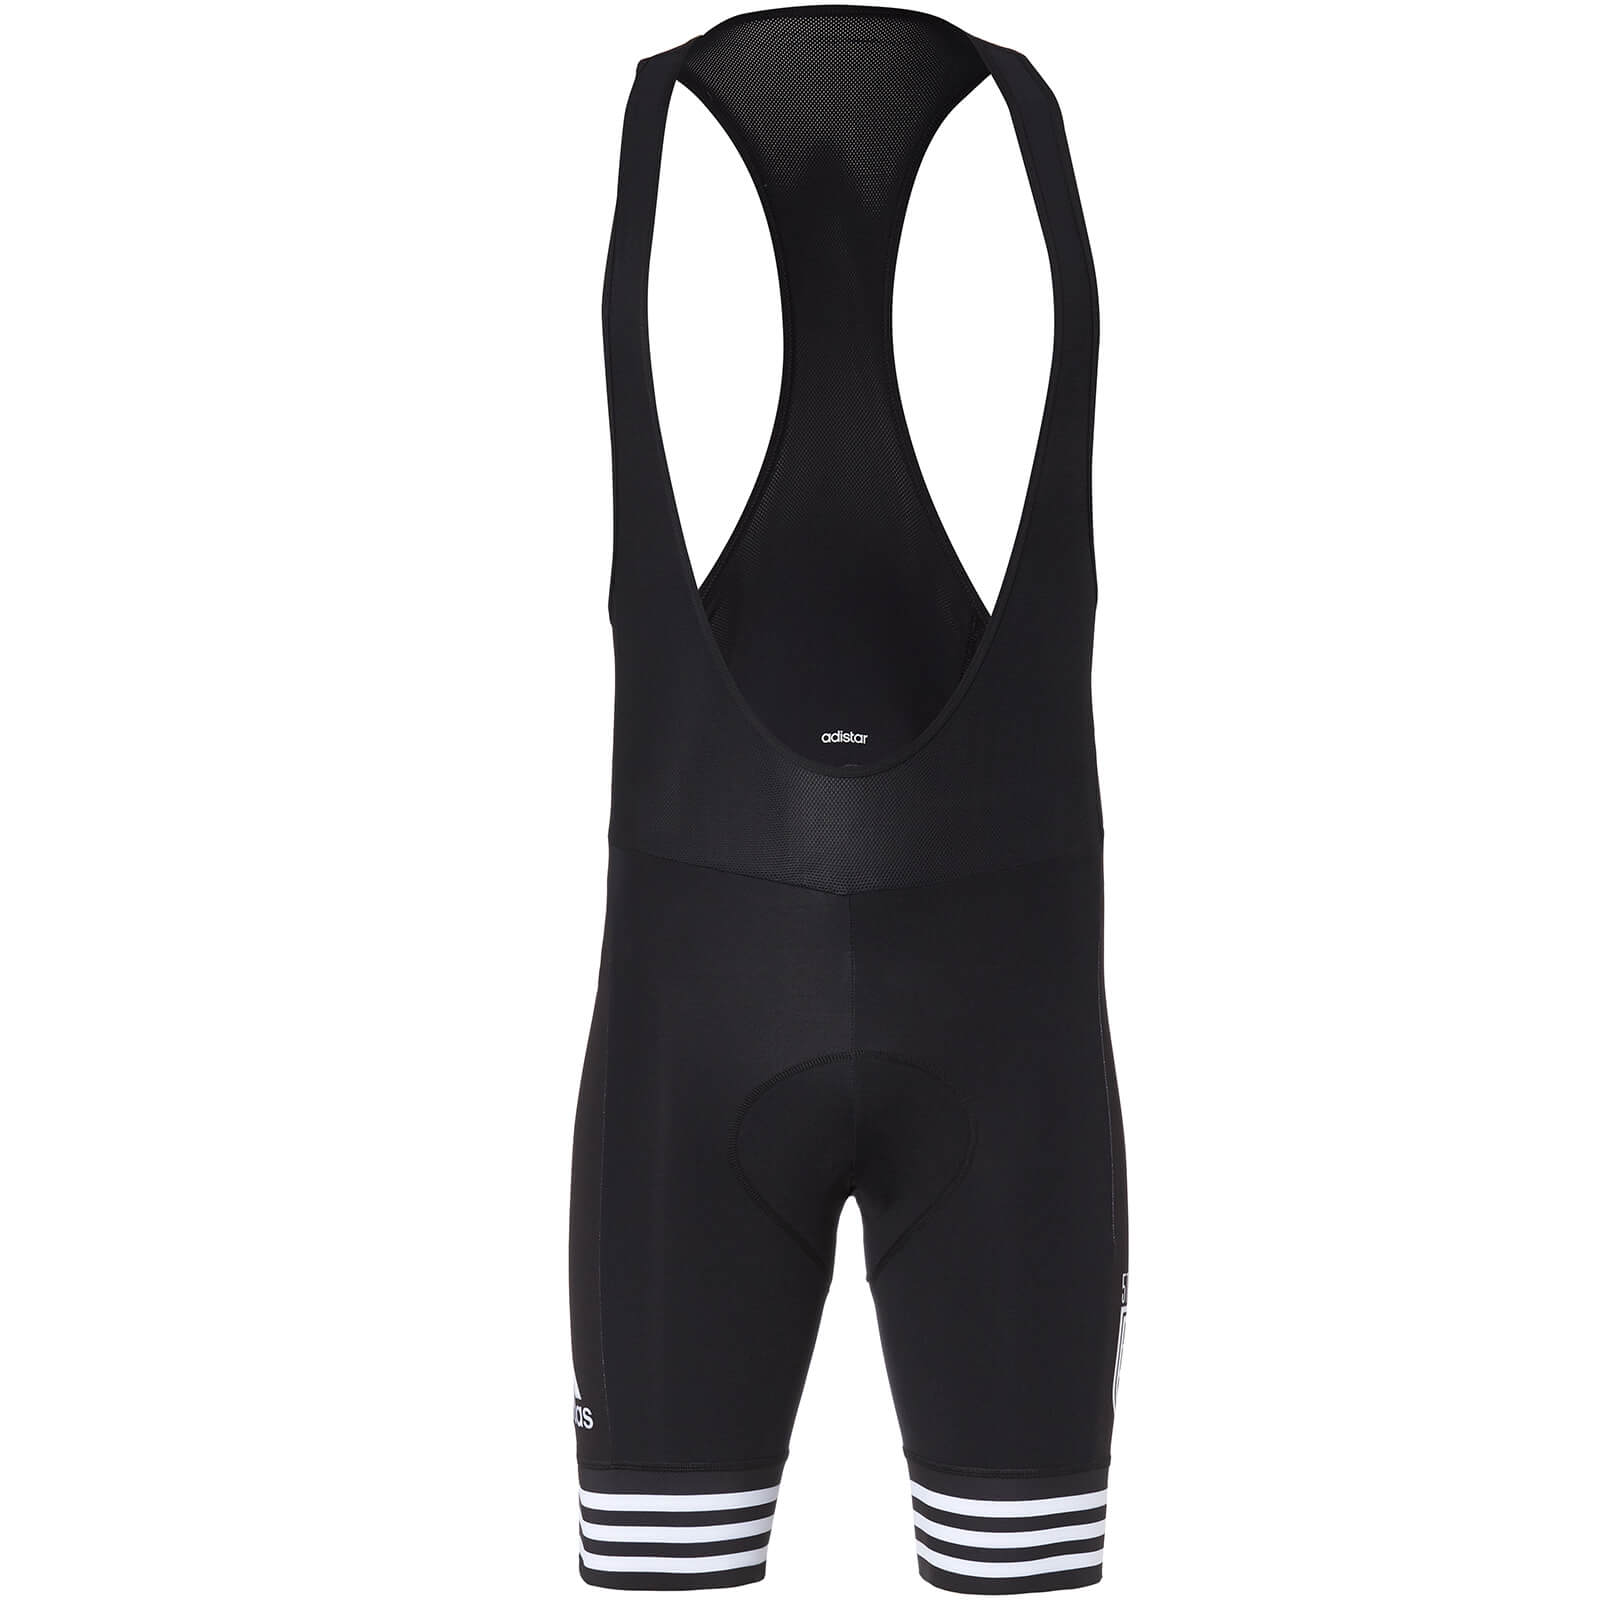 2988b799e1e adidas Men s Adistar Bib Shorts - Black